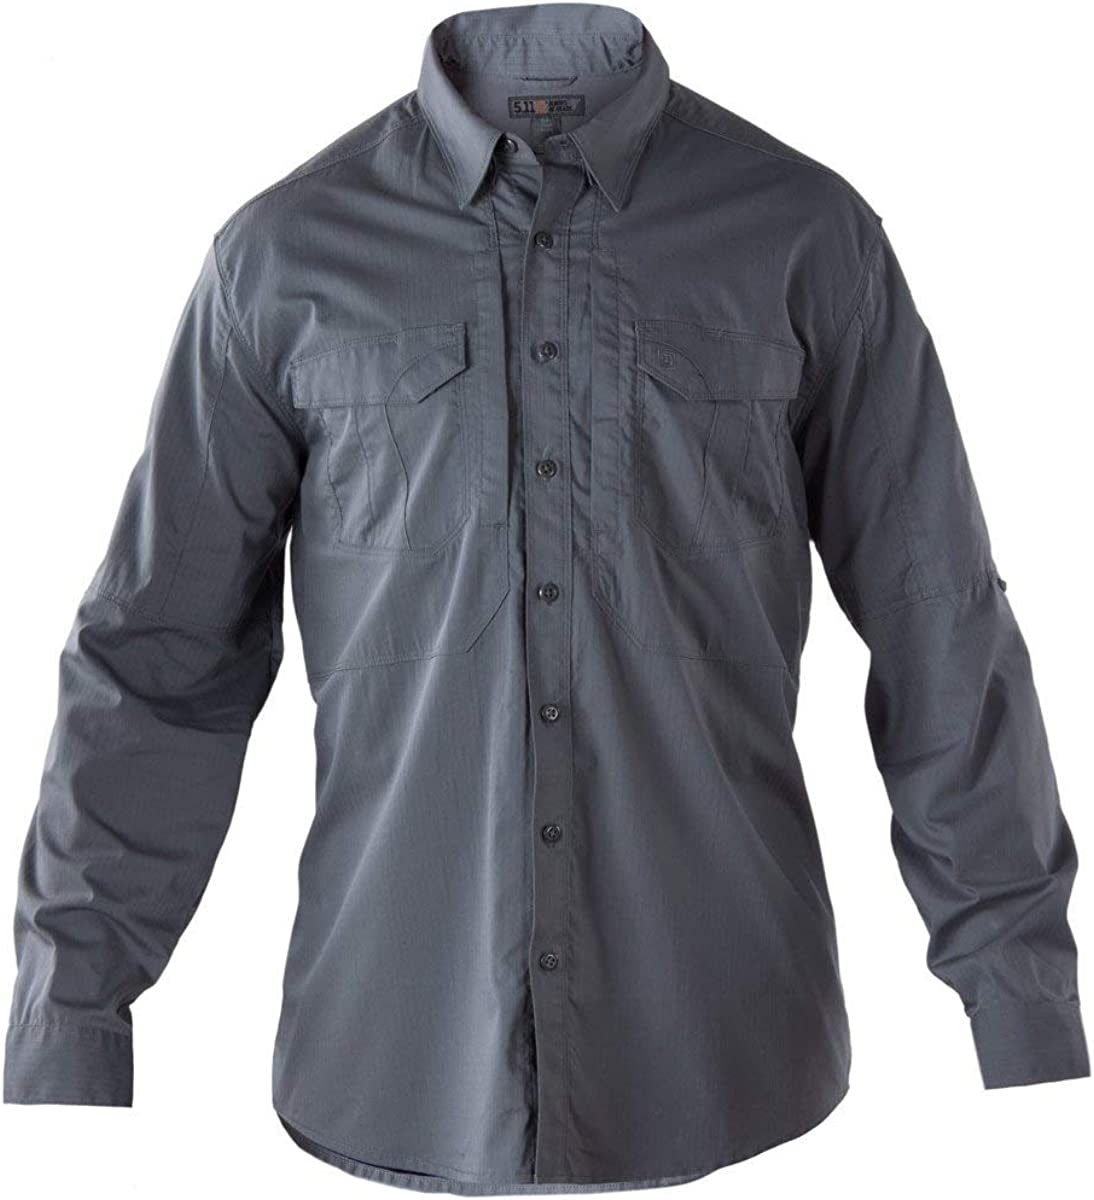 5.11 Tactical Men's Stryke Long F Ranking TOP14 Shirt Stretch Flex-Tac Sleeve At the price